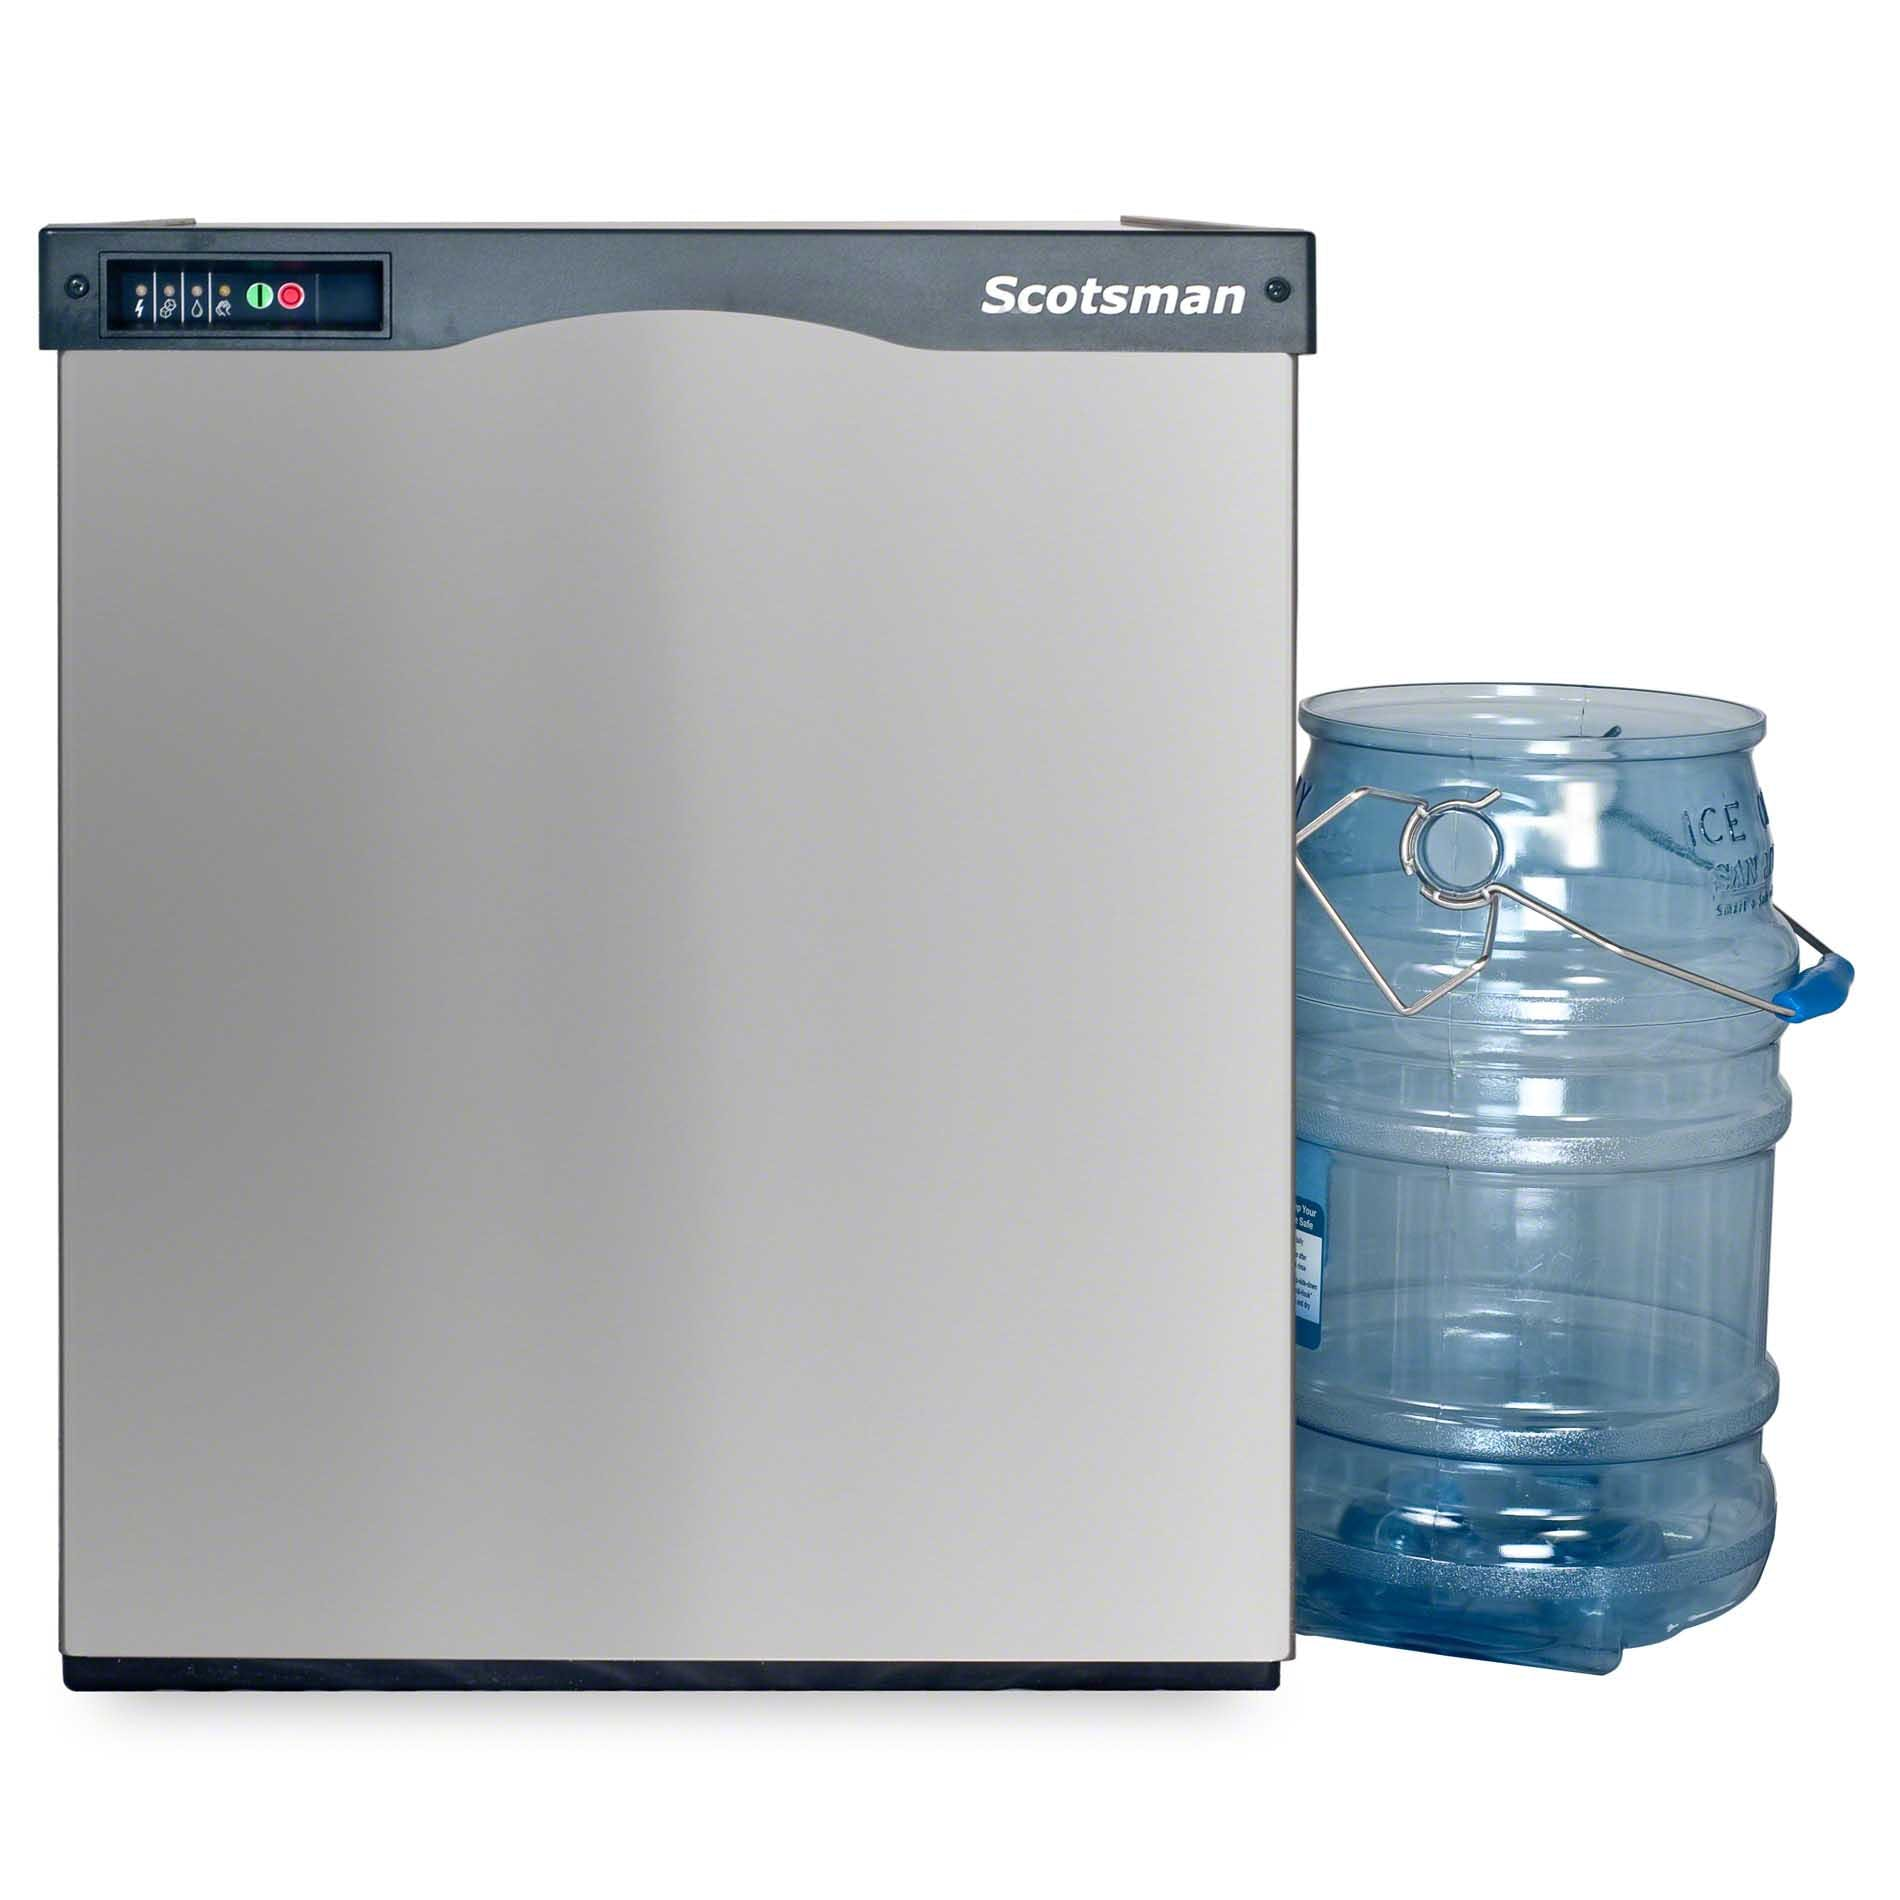 Scotsman - N1322R-32A 1329 lb Nugget Ice Machine - Prodigy Series Ice machine sold by Food Service Warehouse